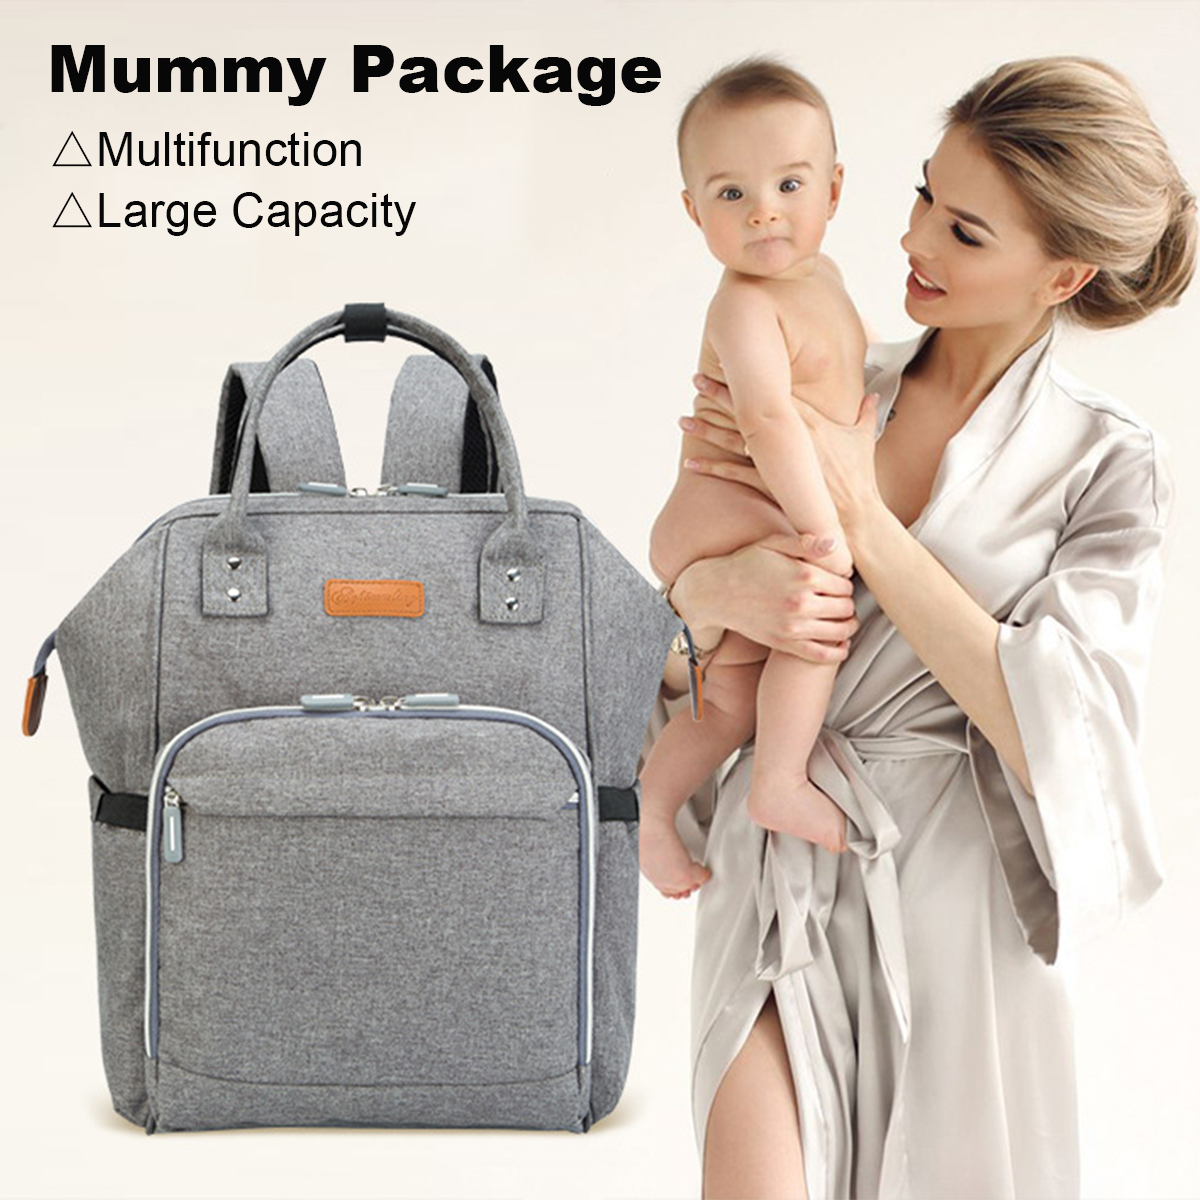 4Pcs Mummy Nappy Diaper Bag Set Nappy Diaper With Nursing Feeding Bottle Pouch Baby Car Hook